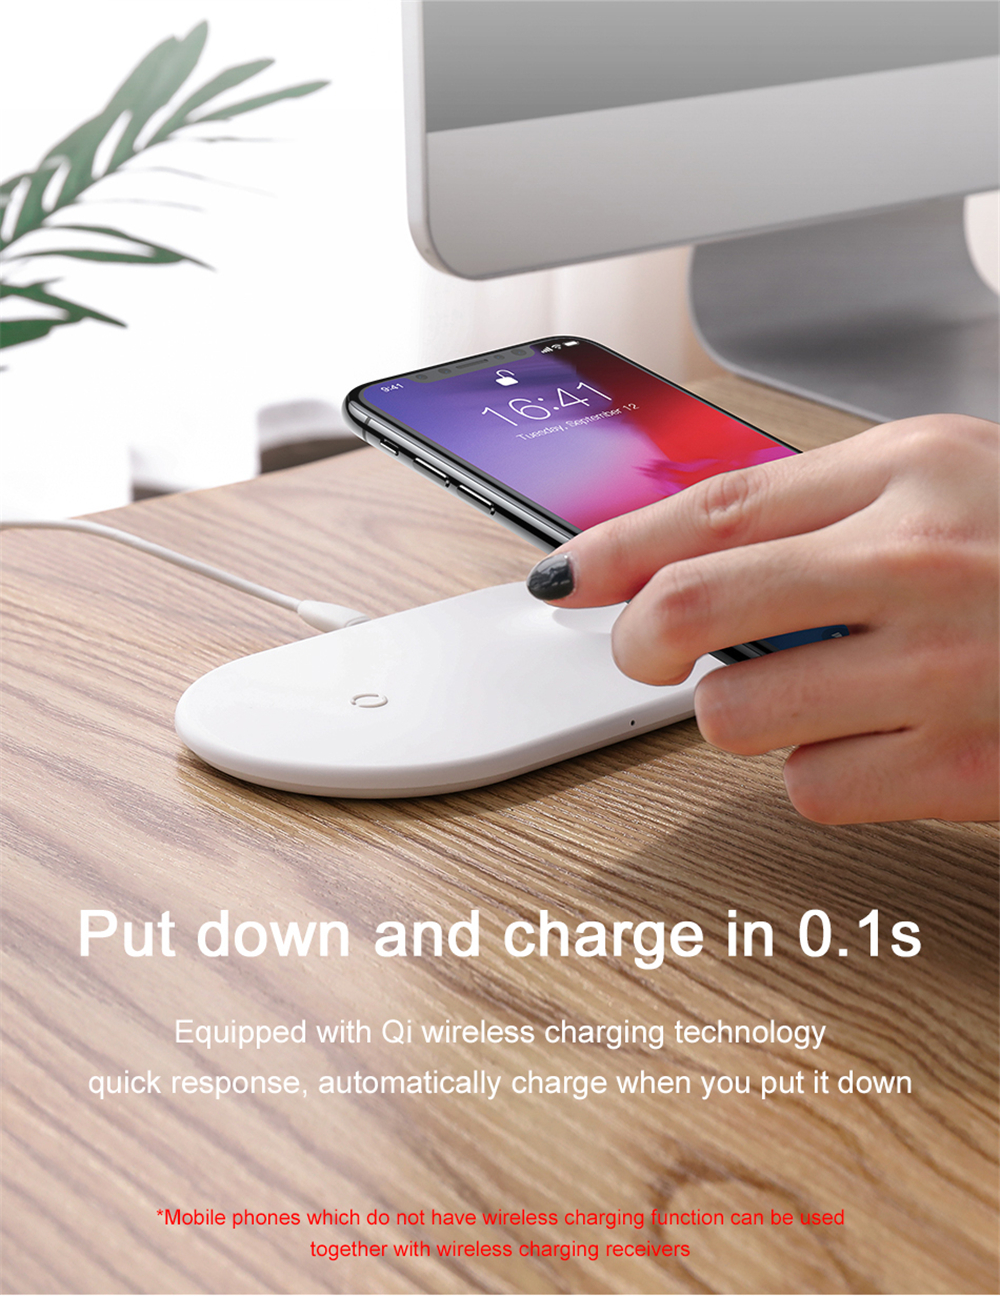 BASEUS BSWC-P19 Double Bases Smart 2-in-1 Wireless Charger Fast Charging Pad - White-8